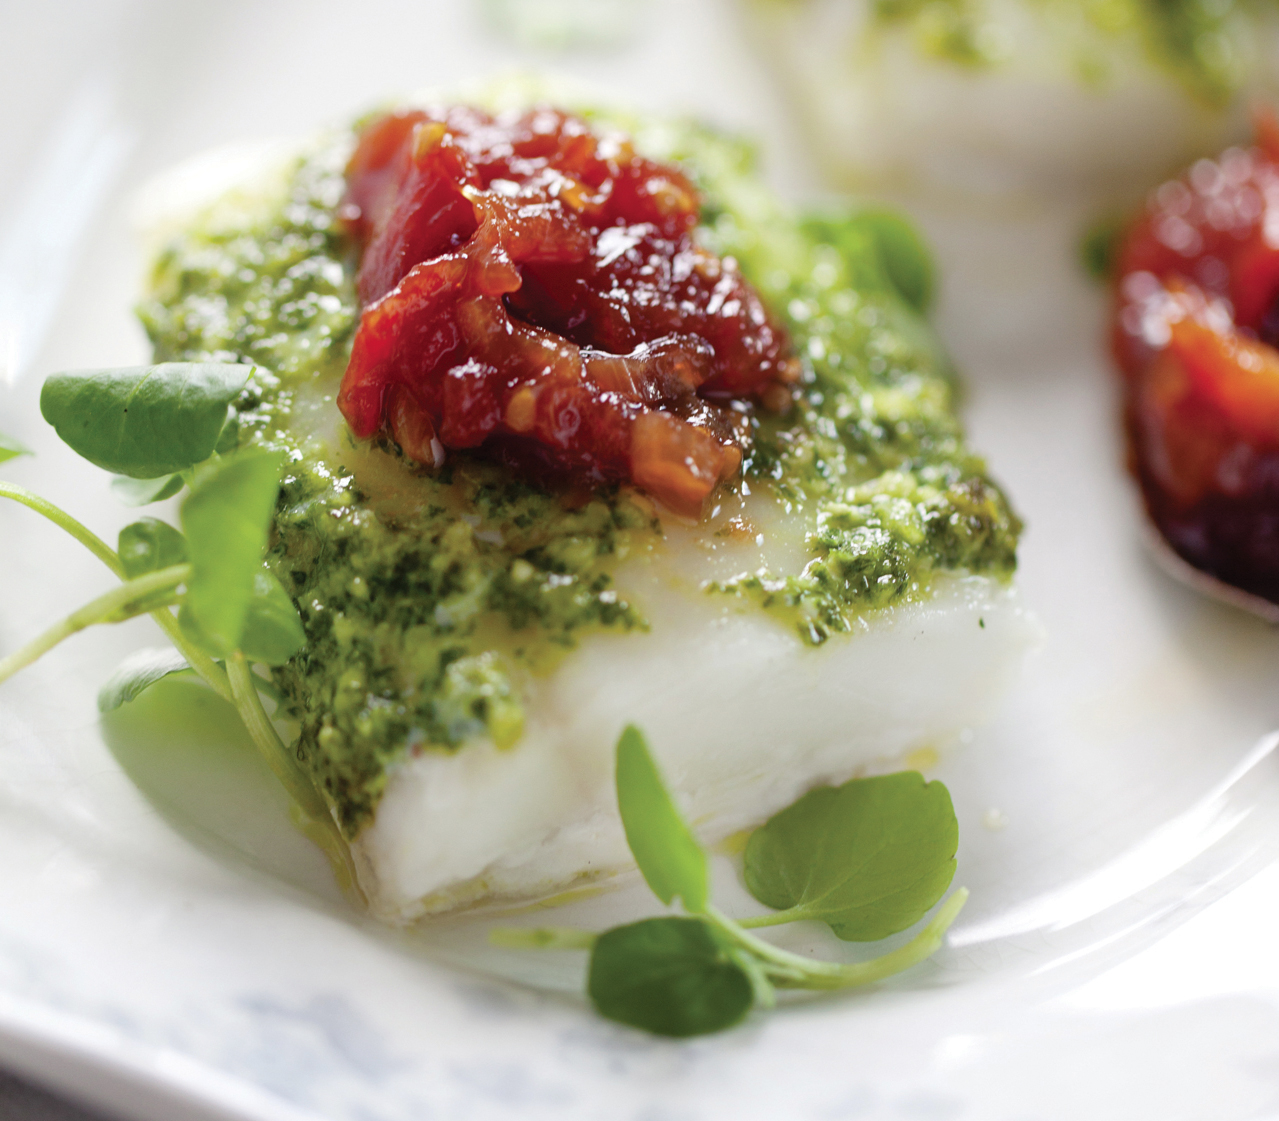 Roasted Cod with Kale Pesto and Tomato Jam